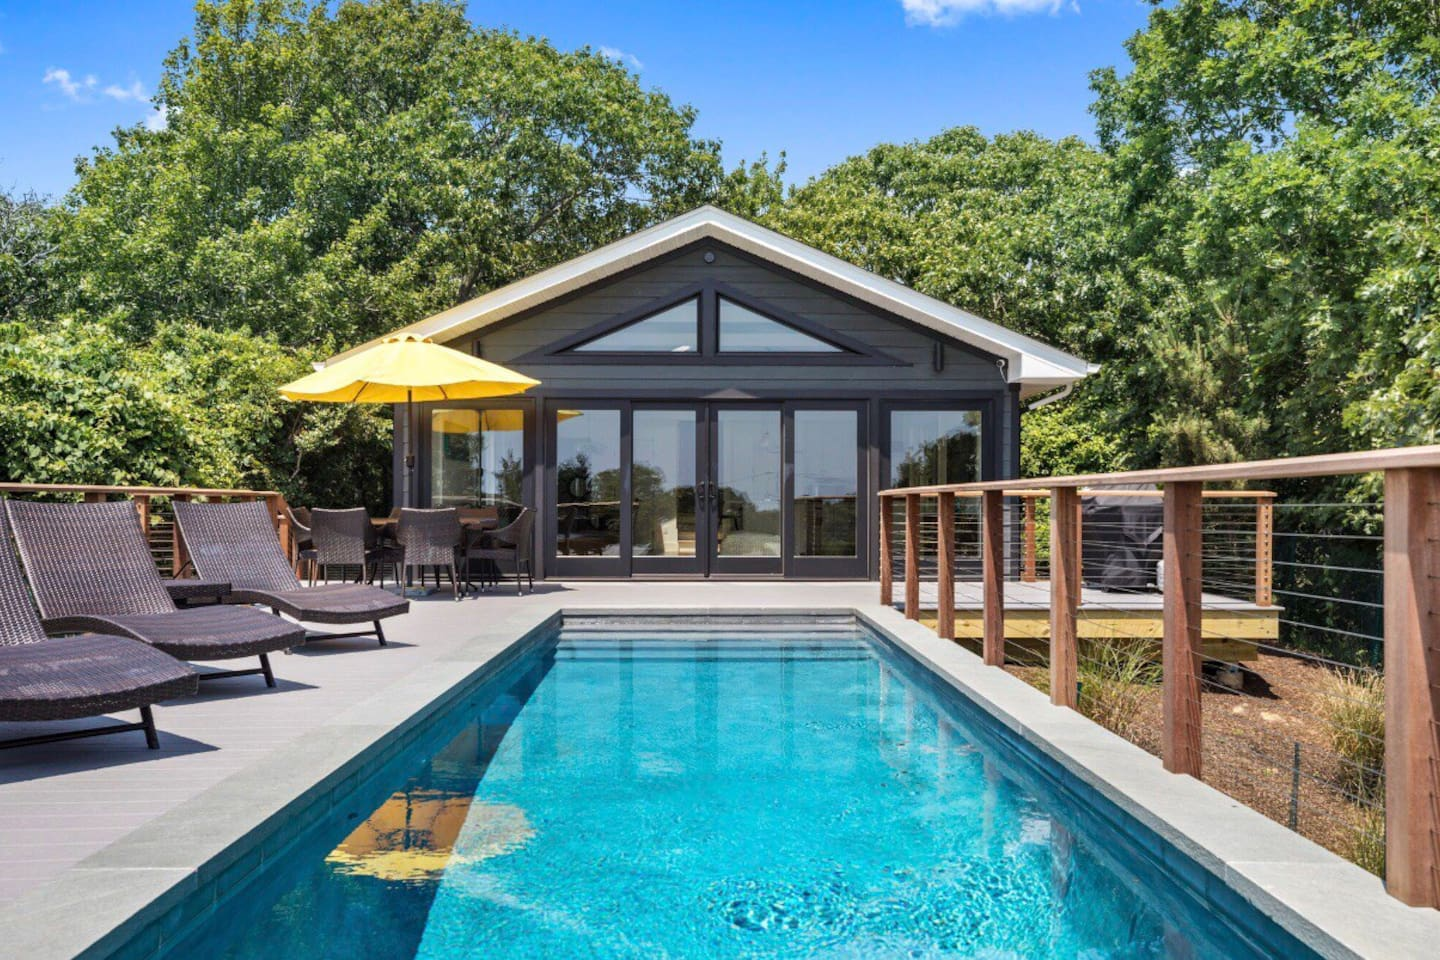 infinity pool united states. *New* Modern Home W/ Infinity Pool \u0026 Ocean View - Houses For Rent In Montauk, New York, United States